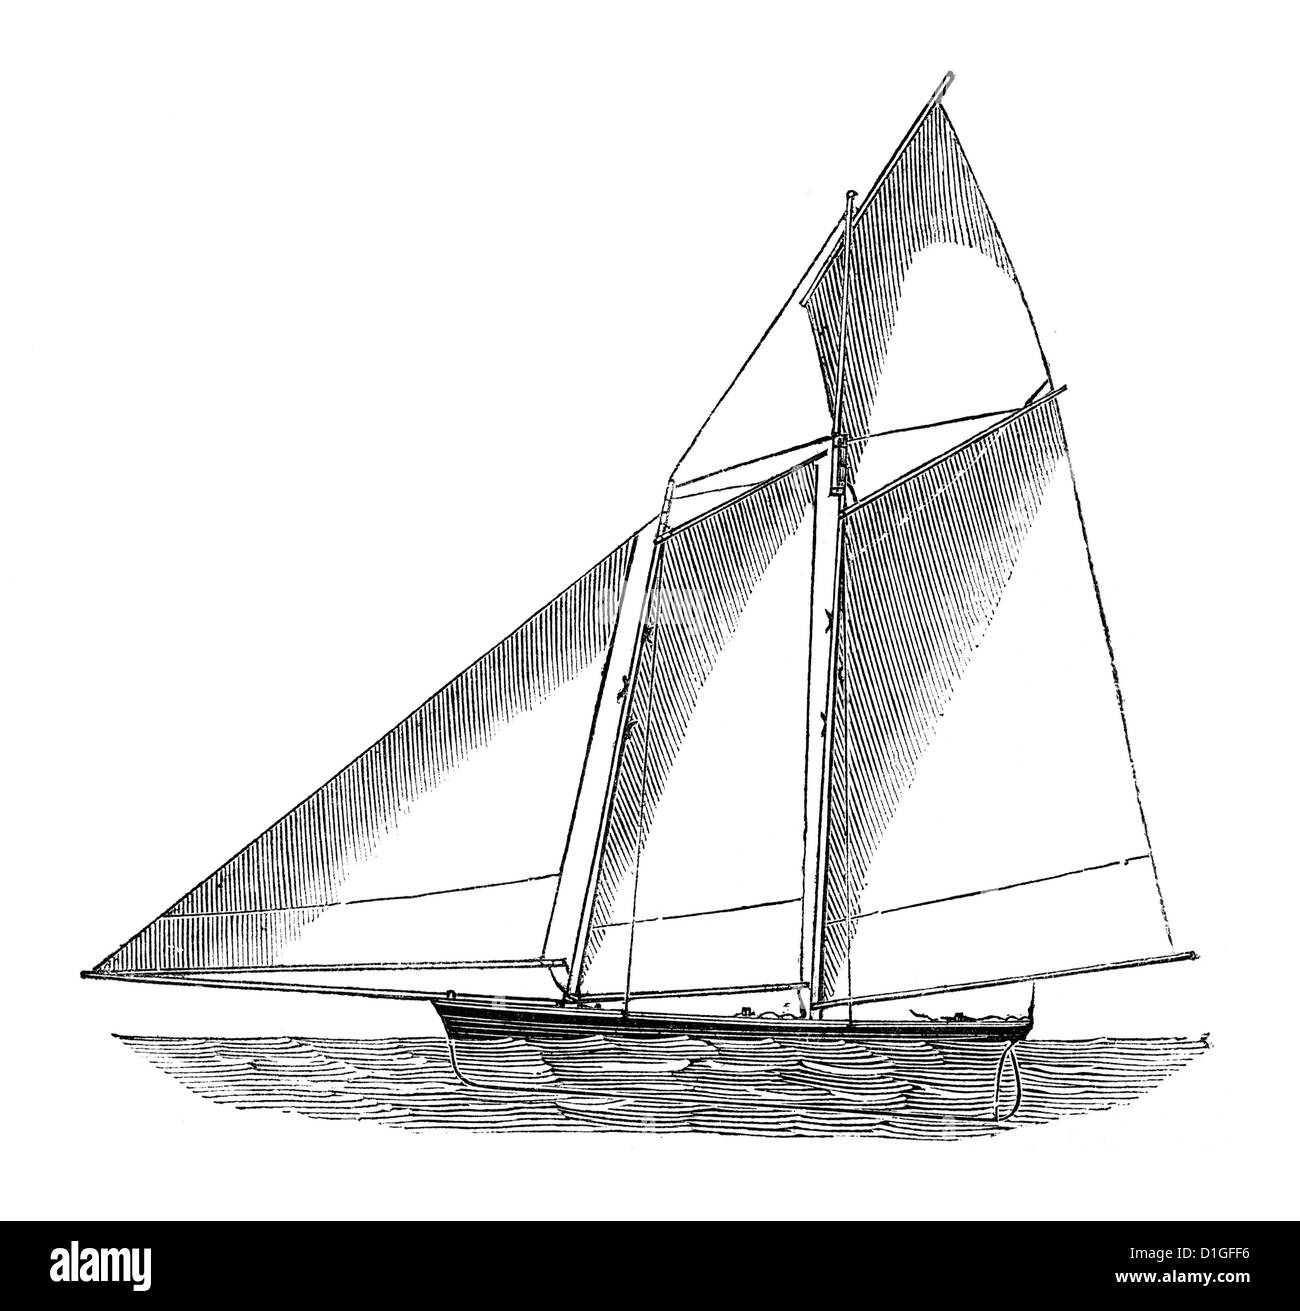 Antique Woodcut image circa 1872 fine line drawing vintage artwork two masted schooner sailboat Stock Photo